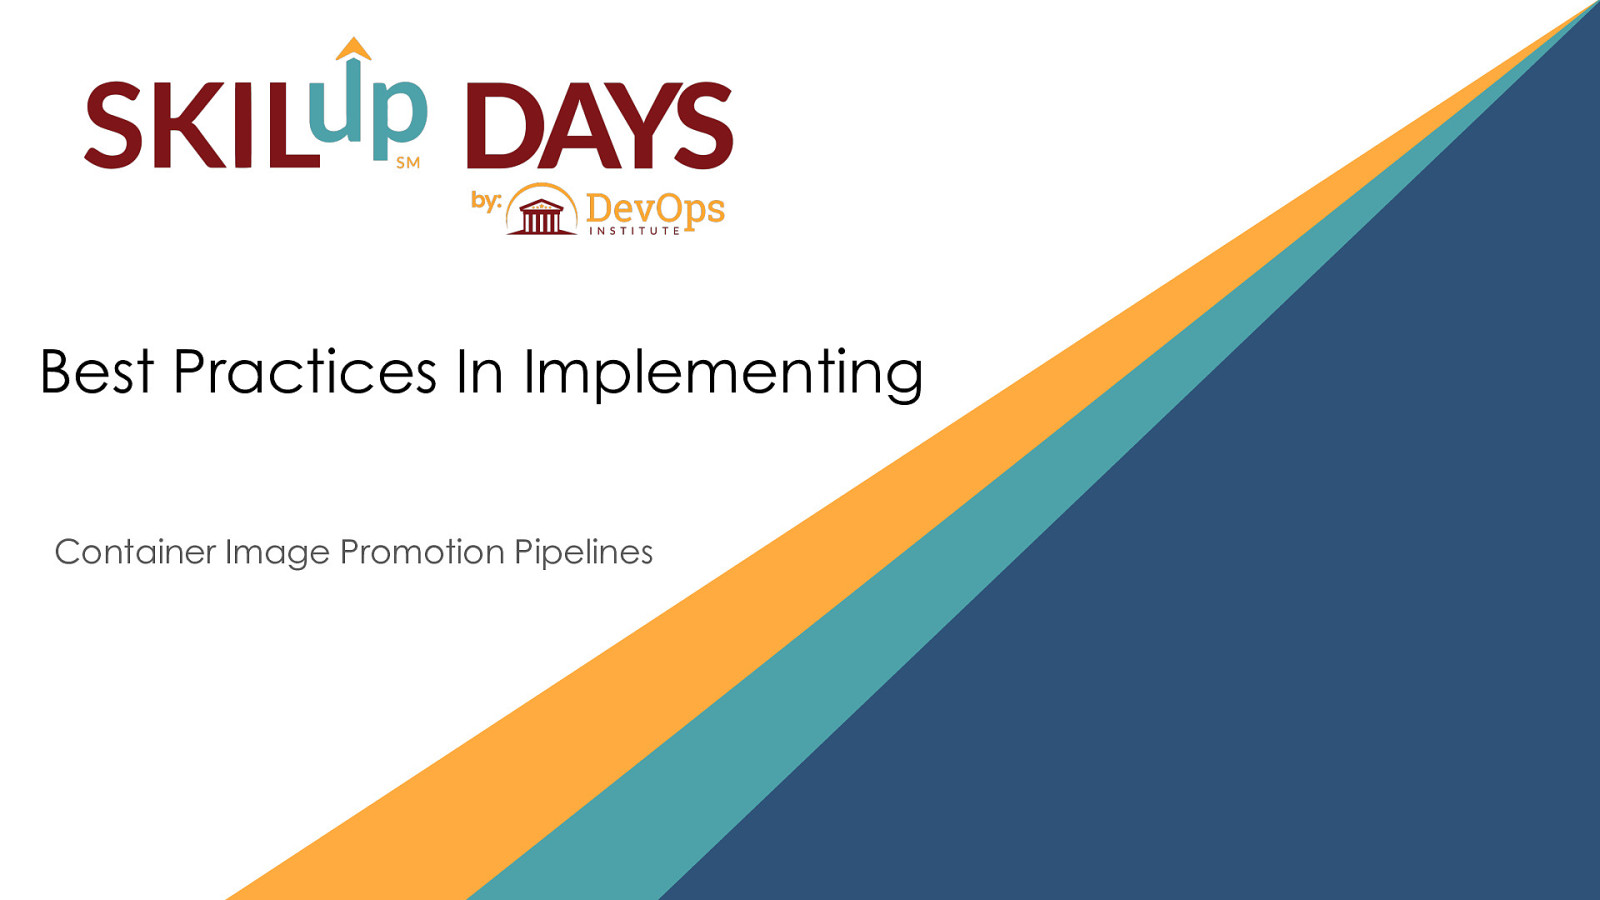 Best Practices In Implementing Container Image Promotion Pipelines by Baruch Sadogursky